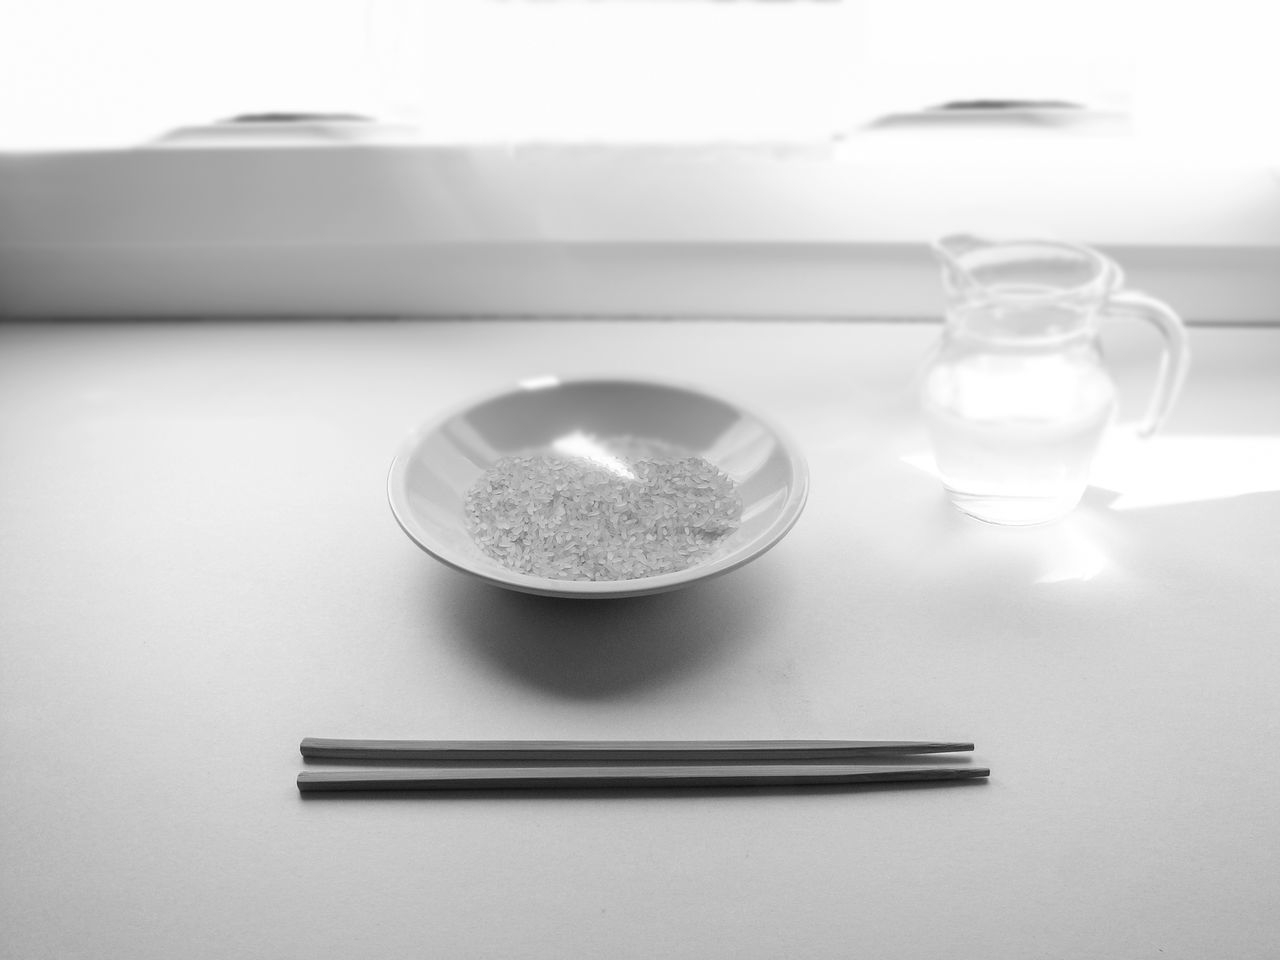 Rice In Plate On Table